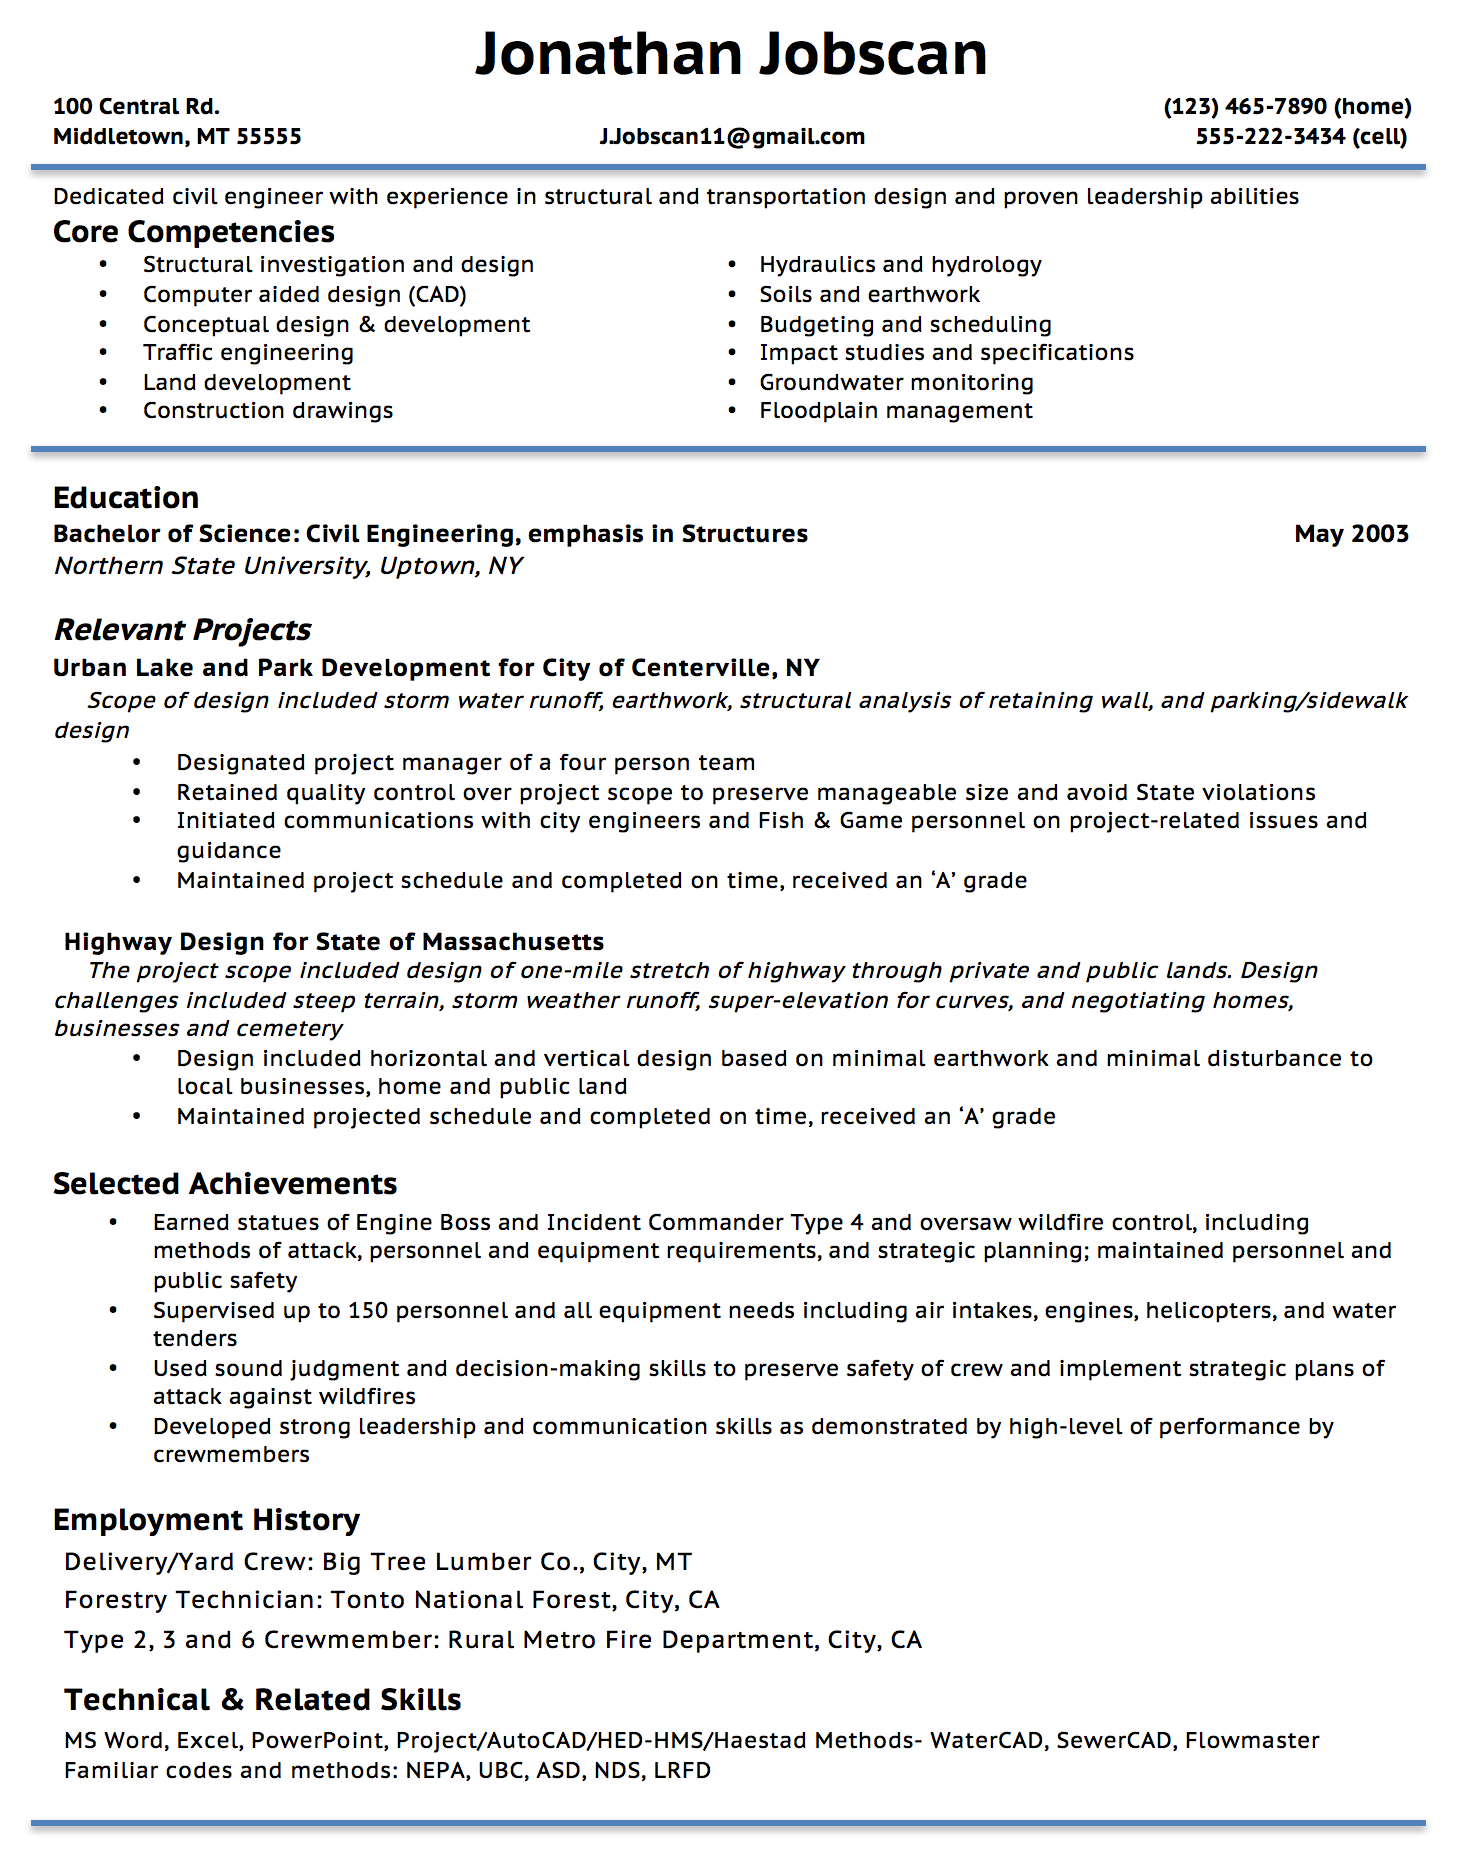 Opposenewapstandardsus  Personable Resume Writing Guide  Jobscan With Gorgeous Example Of A Functional Resume Format With Charming Education Resume Format Also Government Resume Format In Addition Hotel Sales Manager Resume And Sample Actor Resume As Well As Resume Templae Additionally Director Of Nursing Resume From Jobscanco With Opposenewapstandardsus  Gorgeous Resume Writing Guide  Jobscan With Charming Example Of A Functional Resume Format And Personable Education Resume Format Also Government Resume Format In Addition Hotel Sales Manager Resume From Jobscanco